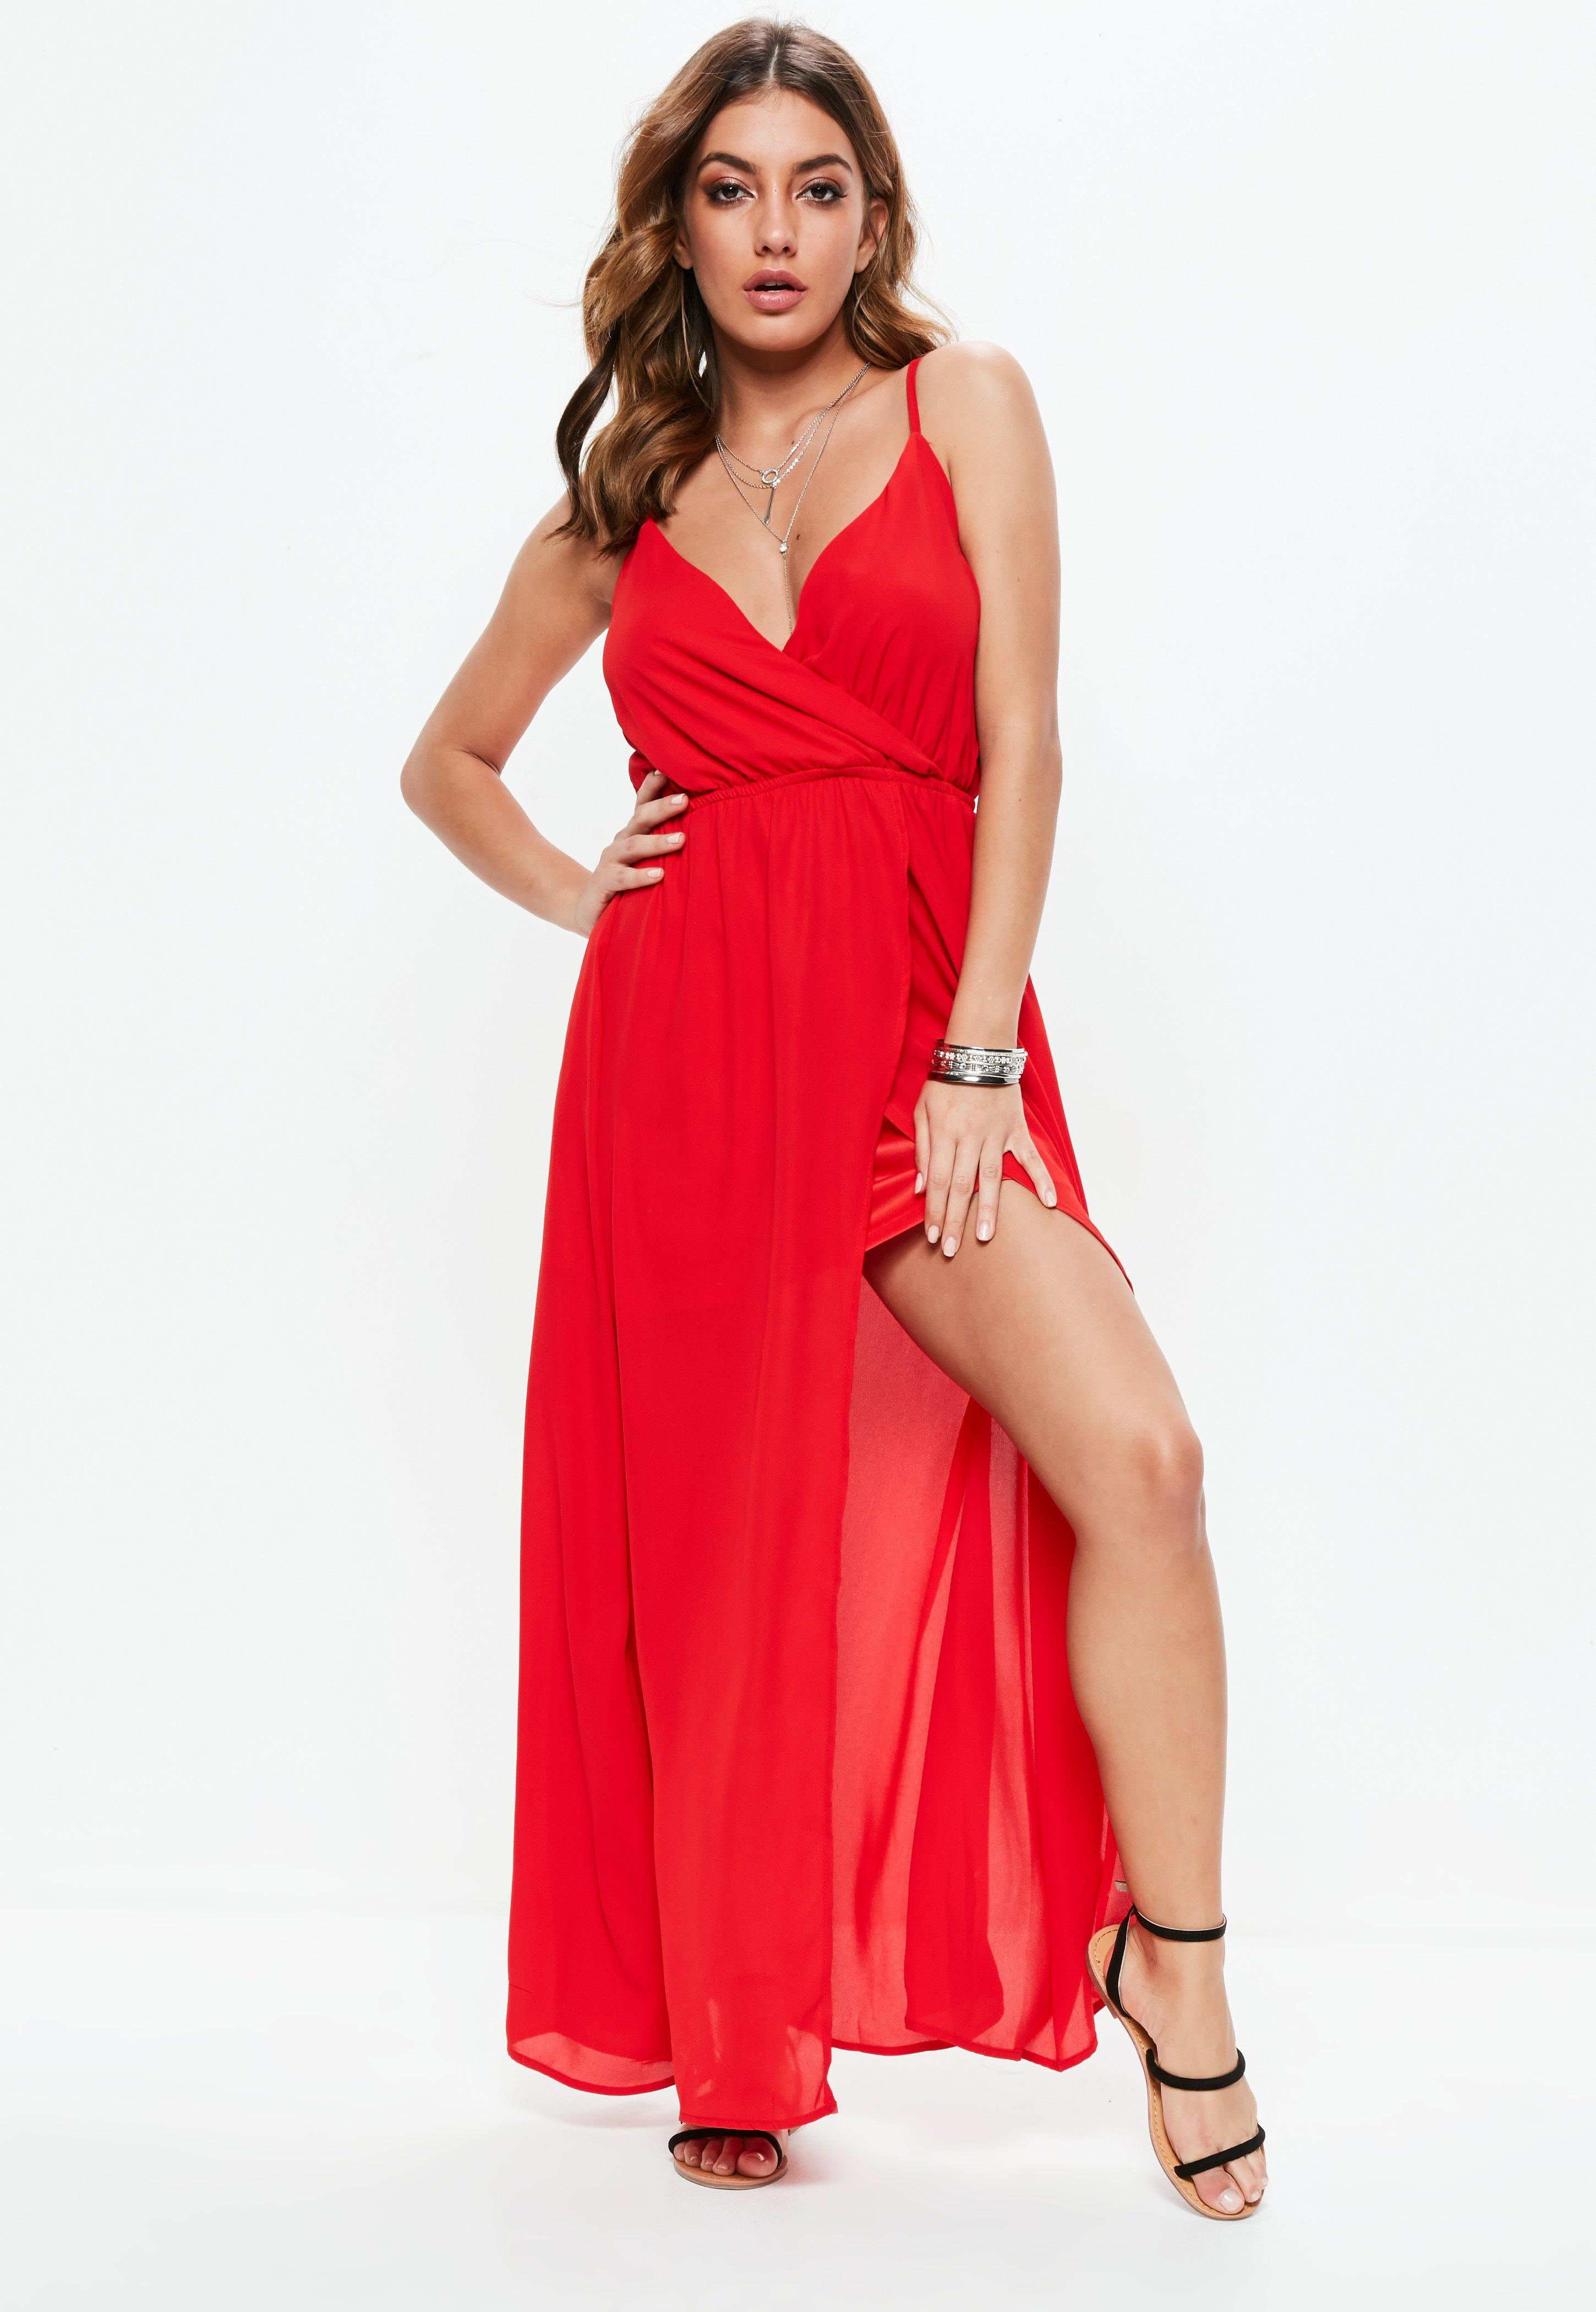 Formal Dresses - Evening & Black Tie Gowns | Missguided